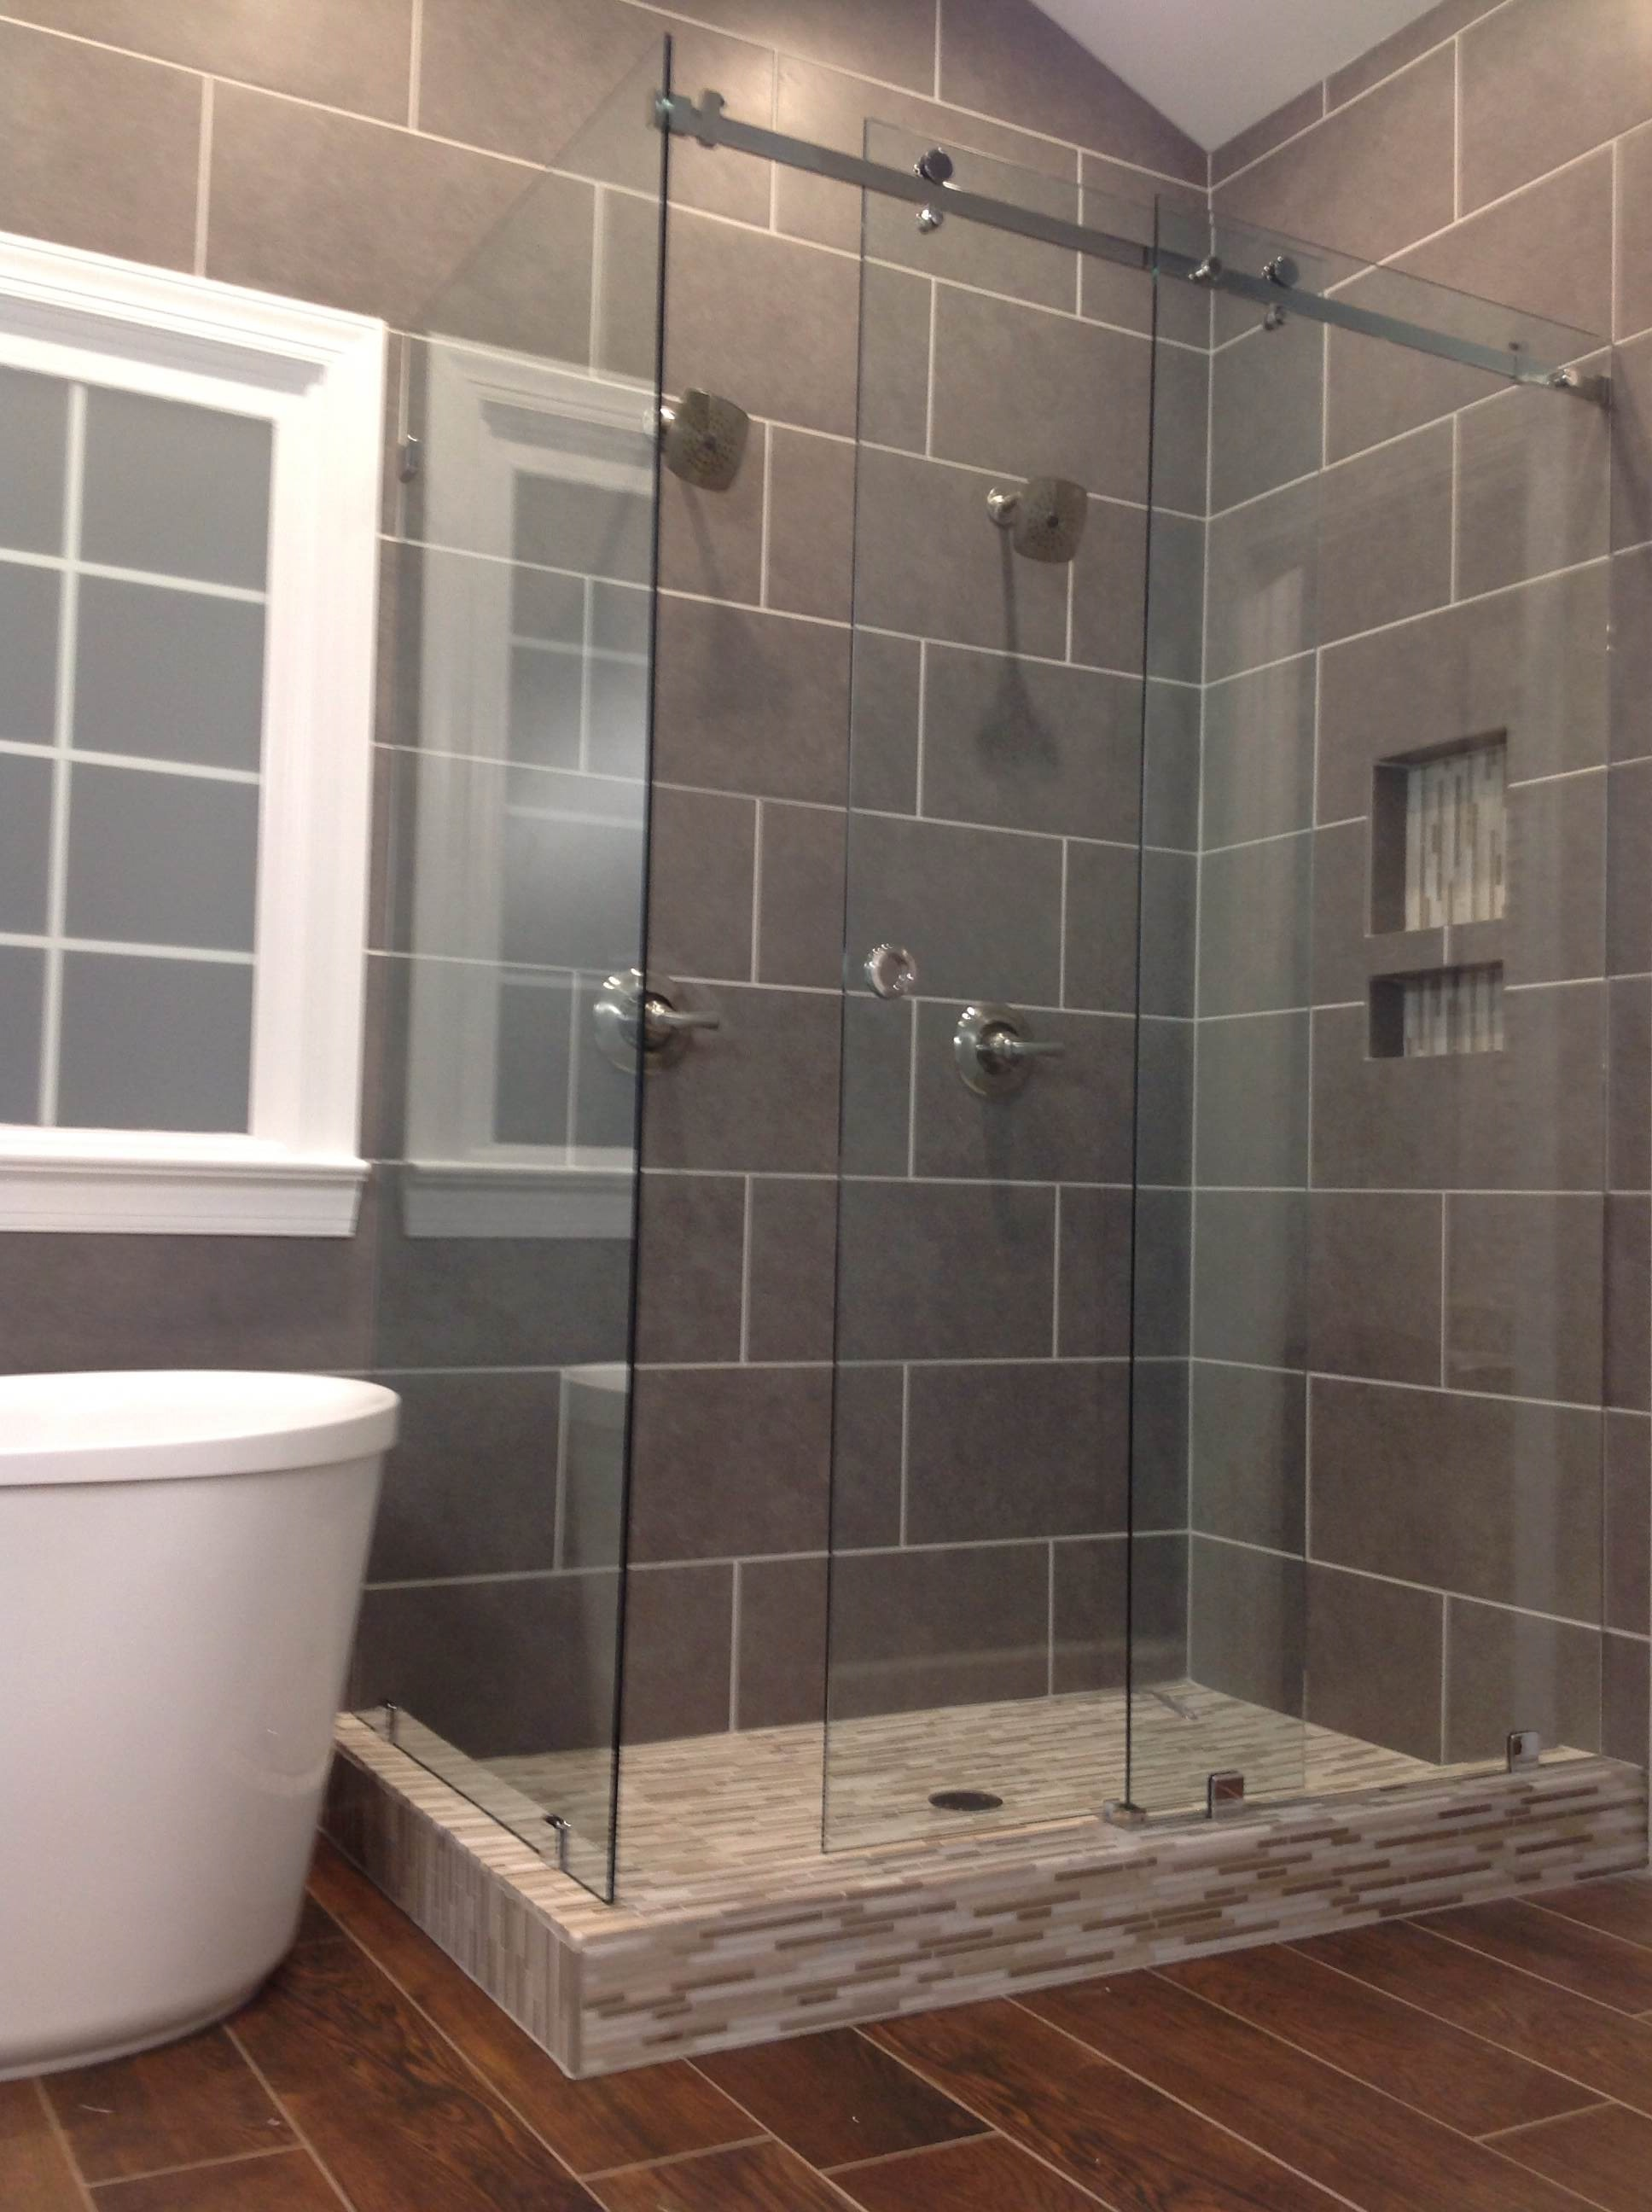 Bathroom Remodel Raleigh Nc frameless glass shower doors raleigh, nc | featured on hgtv's